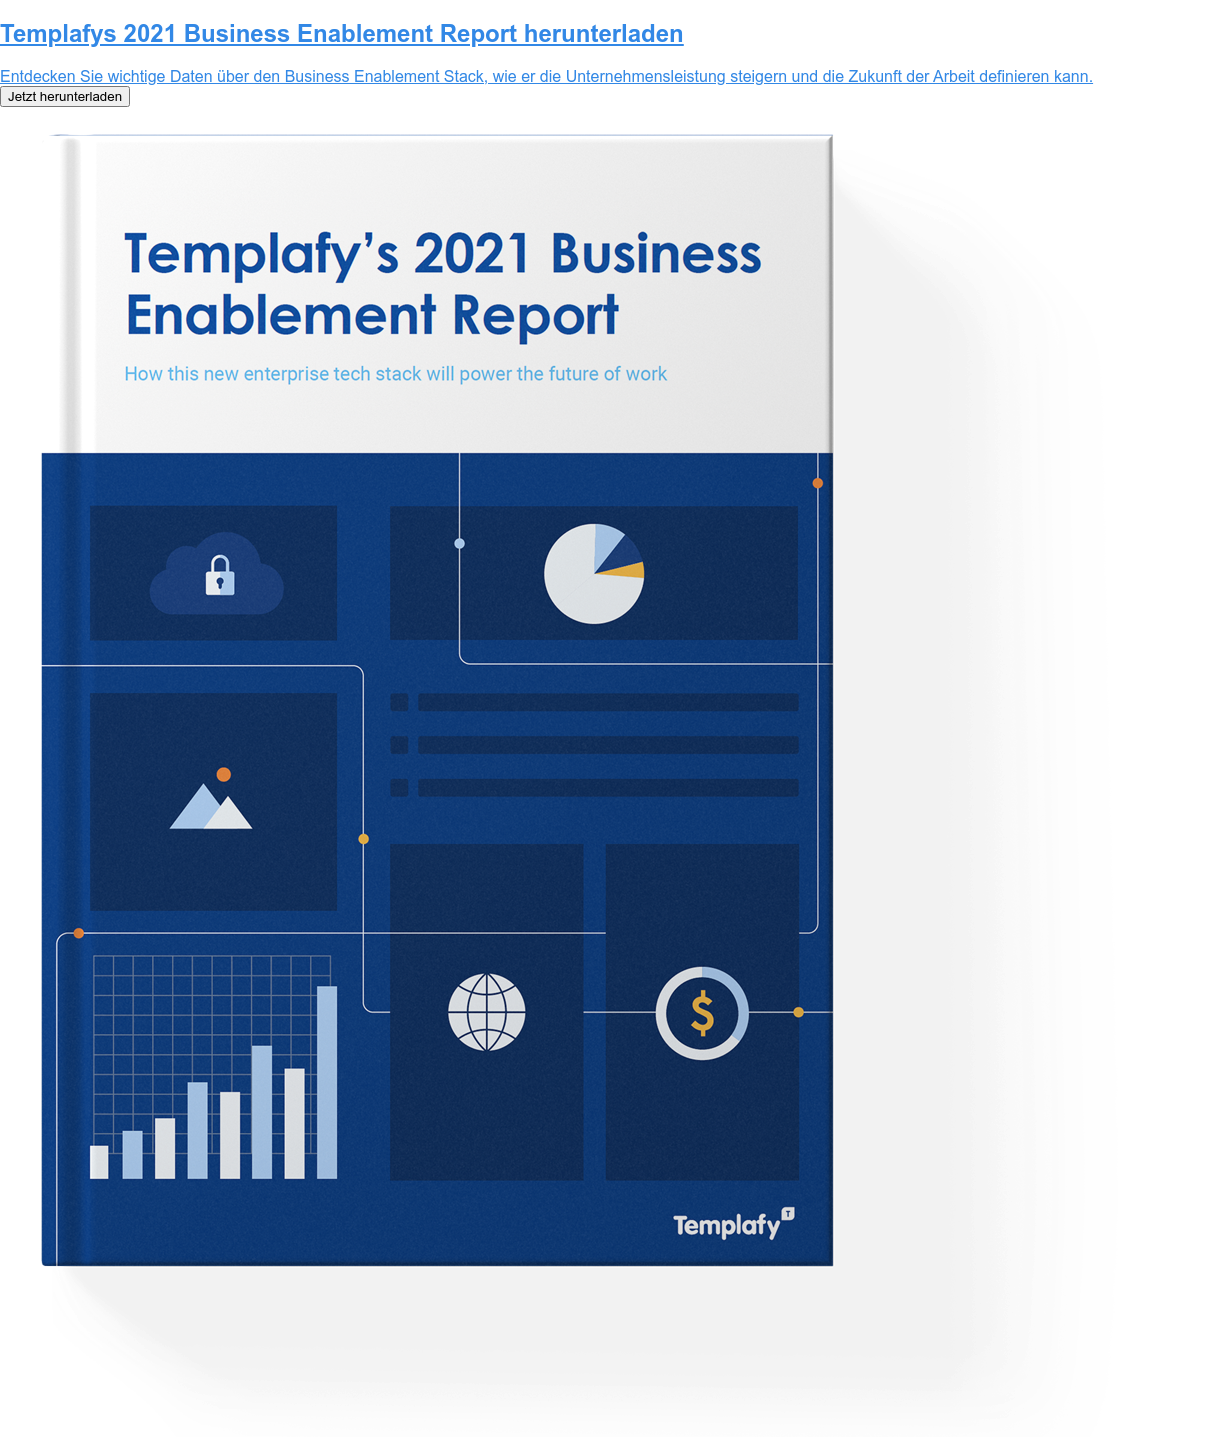 Download Templafy's 2021 Business Enablement Report  Explore critical data on the business enablement stack, how it can power  business performance and define the future of work.  Download now